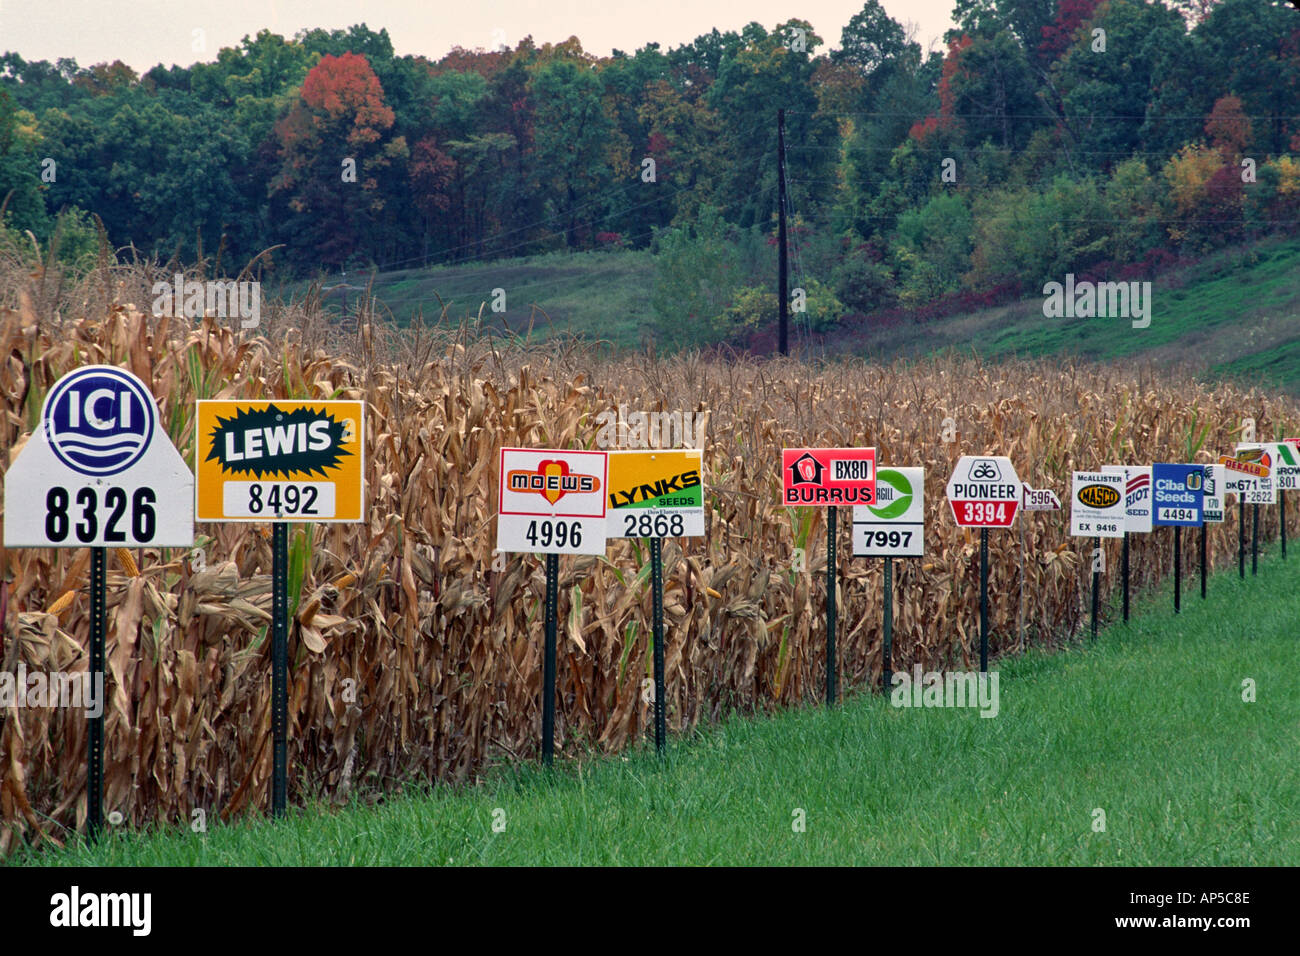 Test cornfield with corn seed brand signs identifying different seed strains Alexandria Missouri Stock Photo